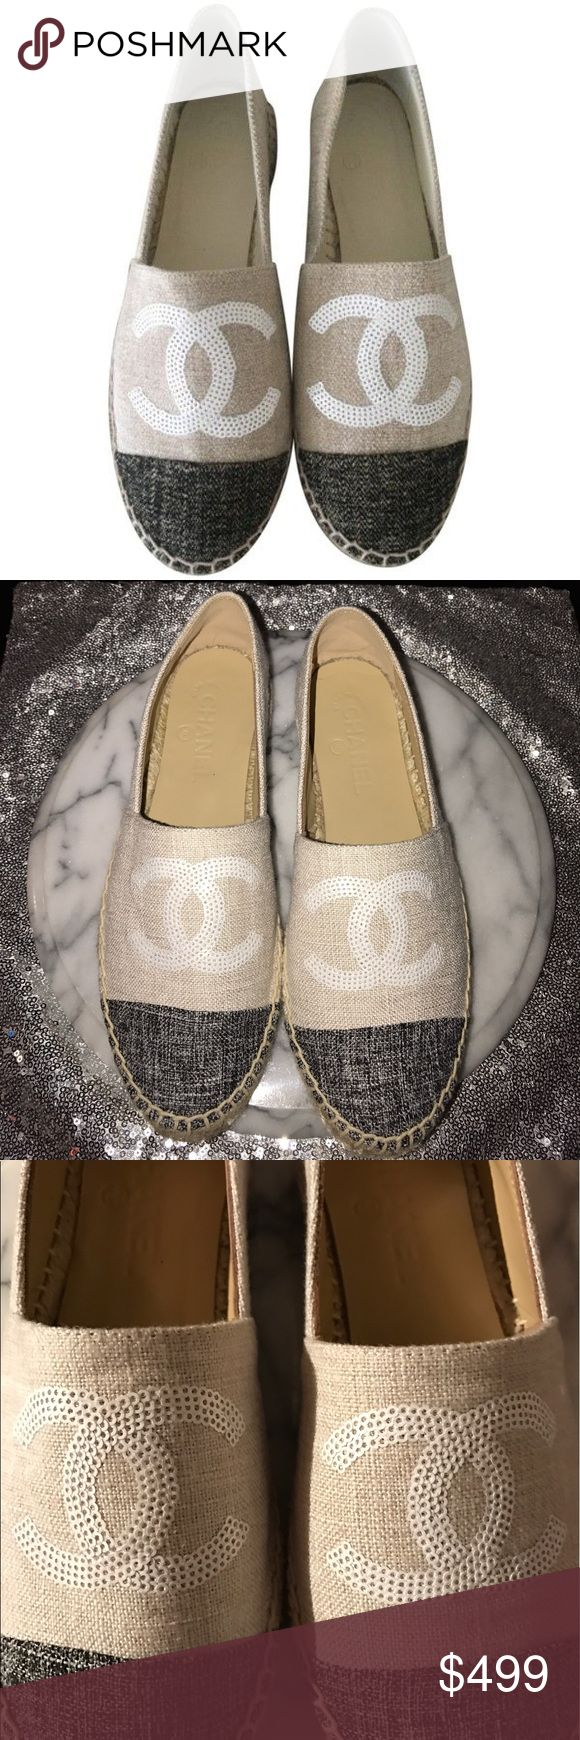 25 best ideas about chanel espadrilles price on